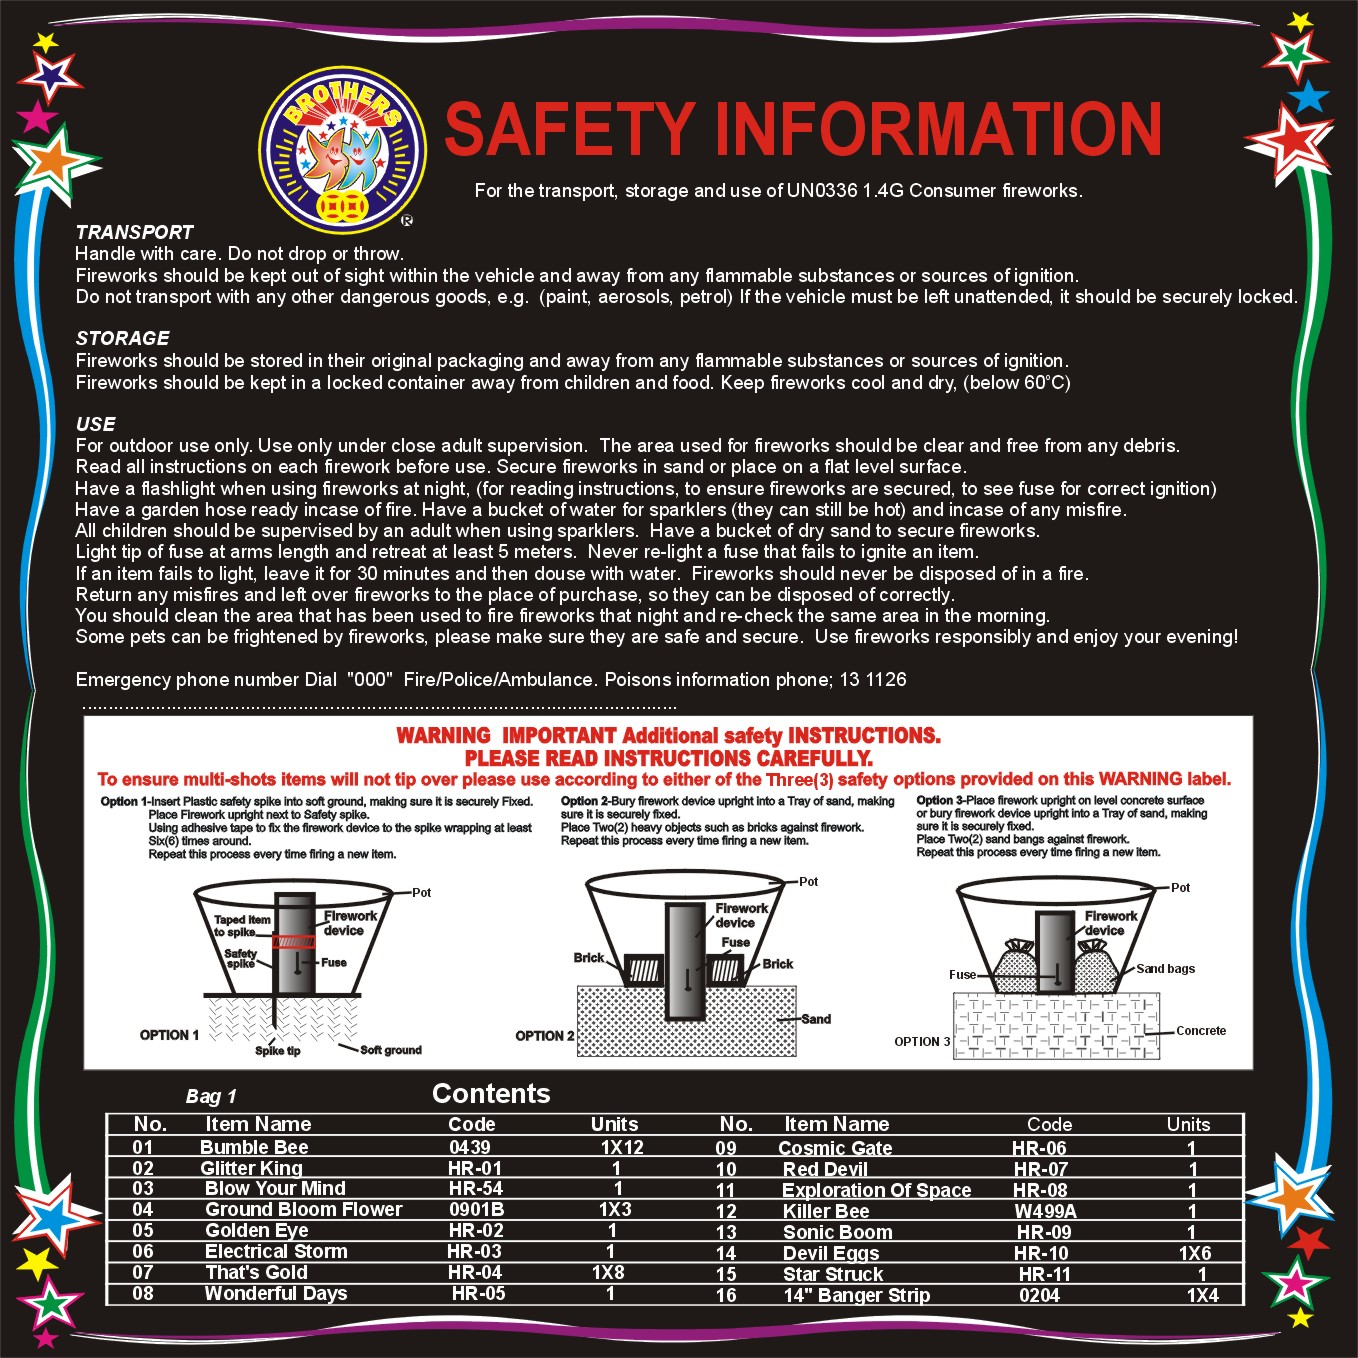 SAFTY GUIDELINES